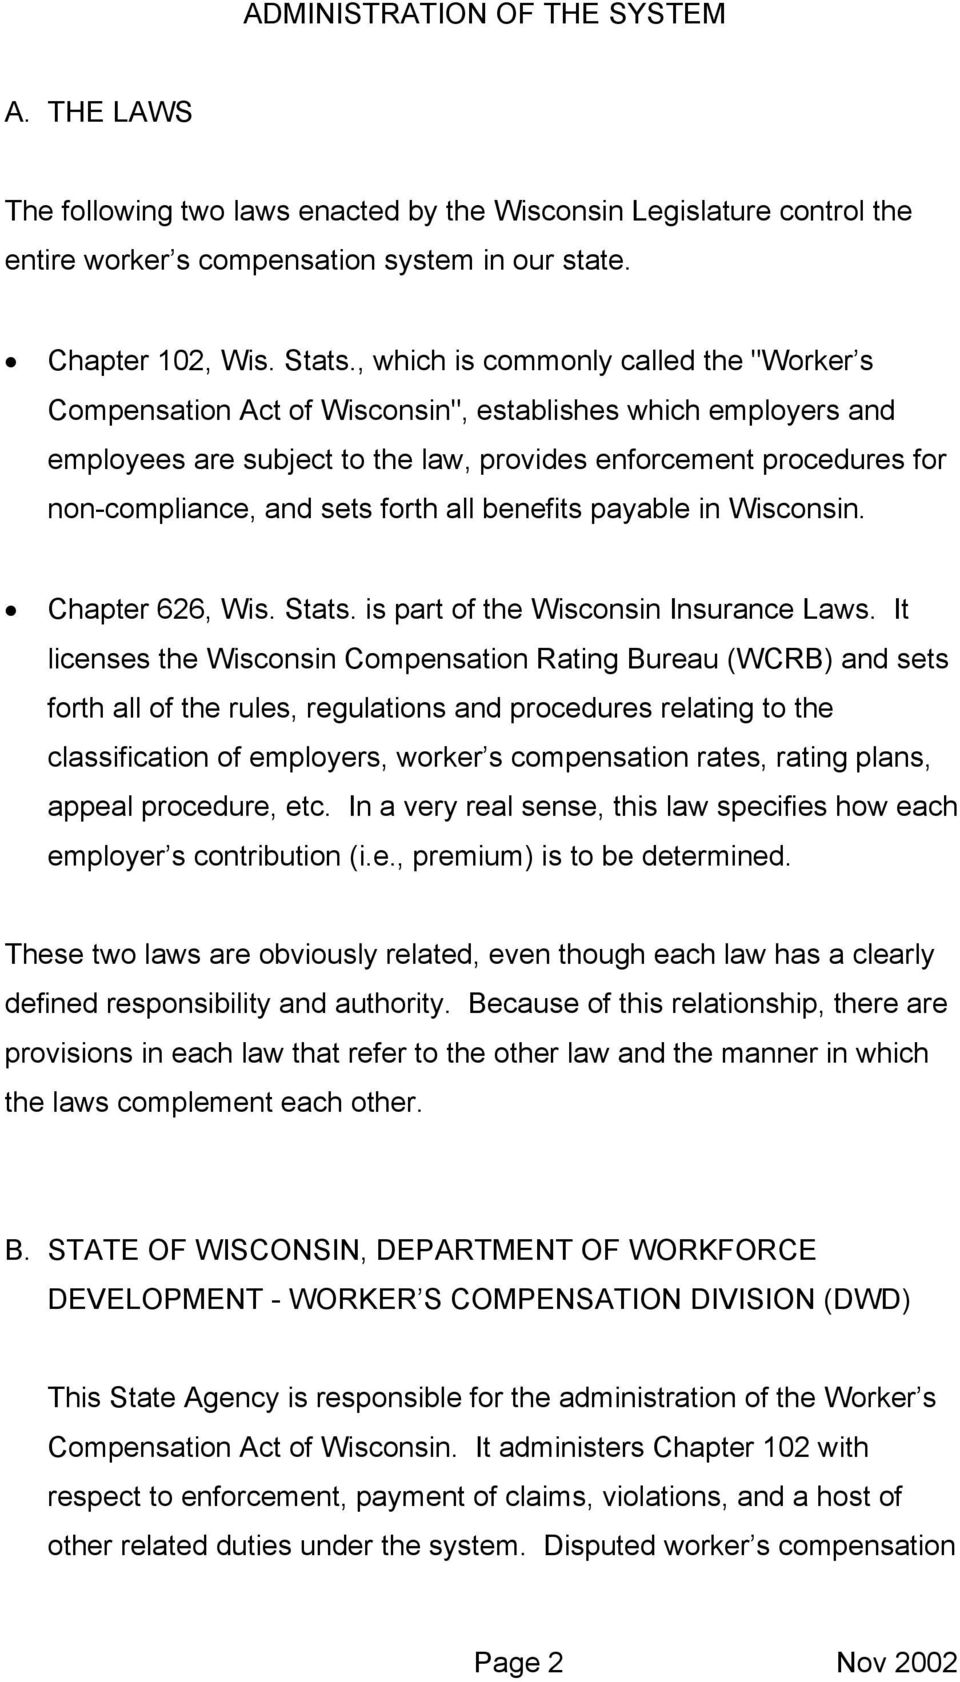 forth all benefits payable in Wisconsin. Chapter 626, Wis. Stats. is part of the Wisconsin Insurance Laws.